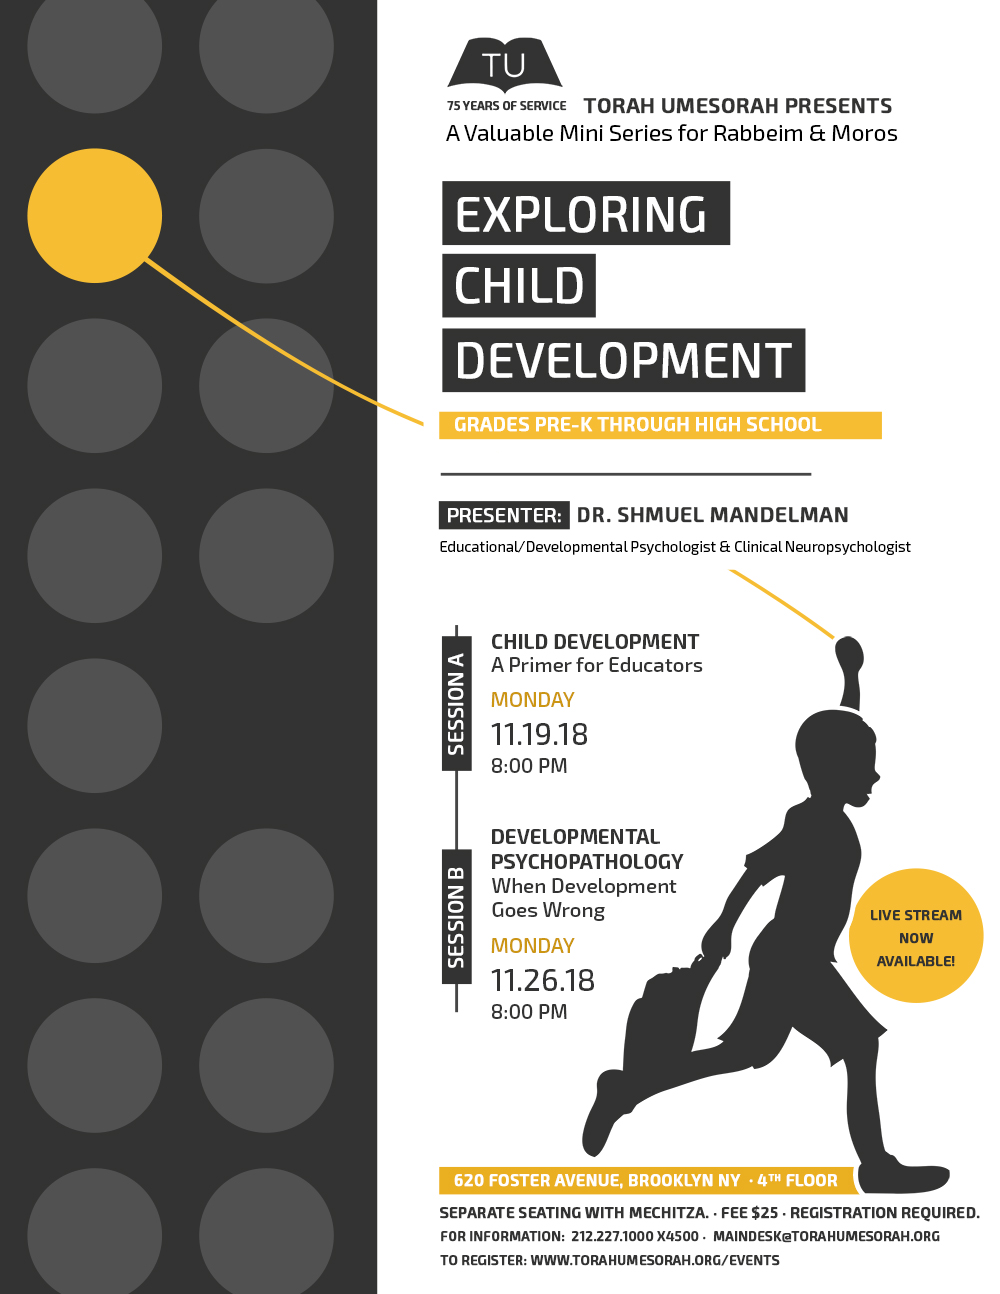 Exploring Child Development: A Valuable Mini-Series for Rabbeim & Moros